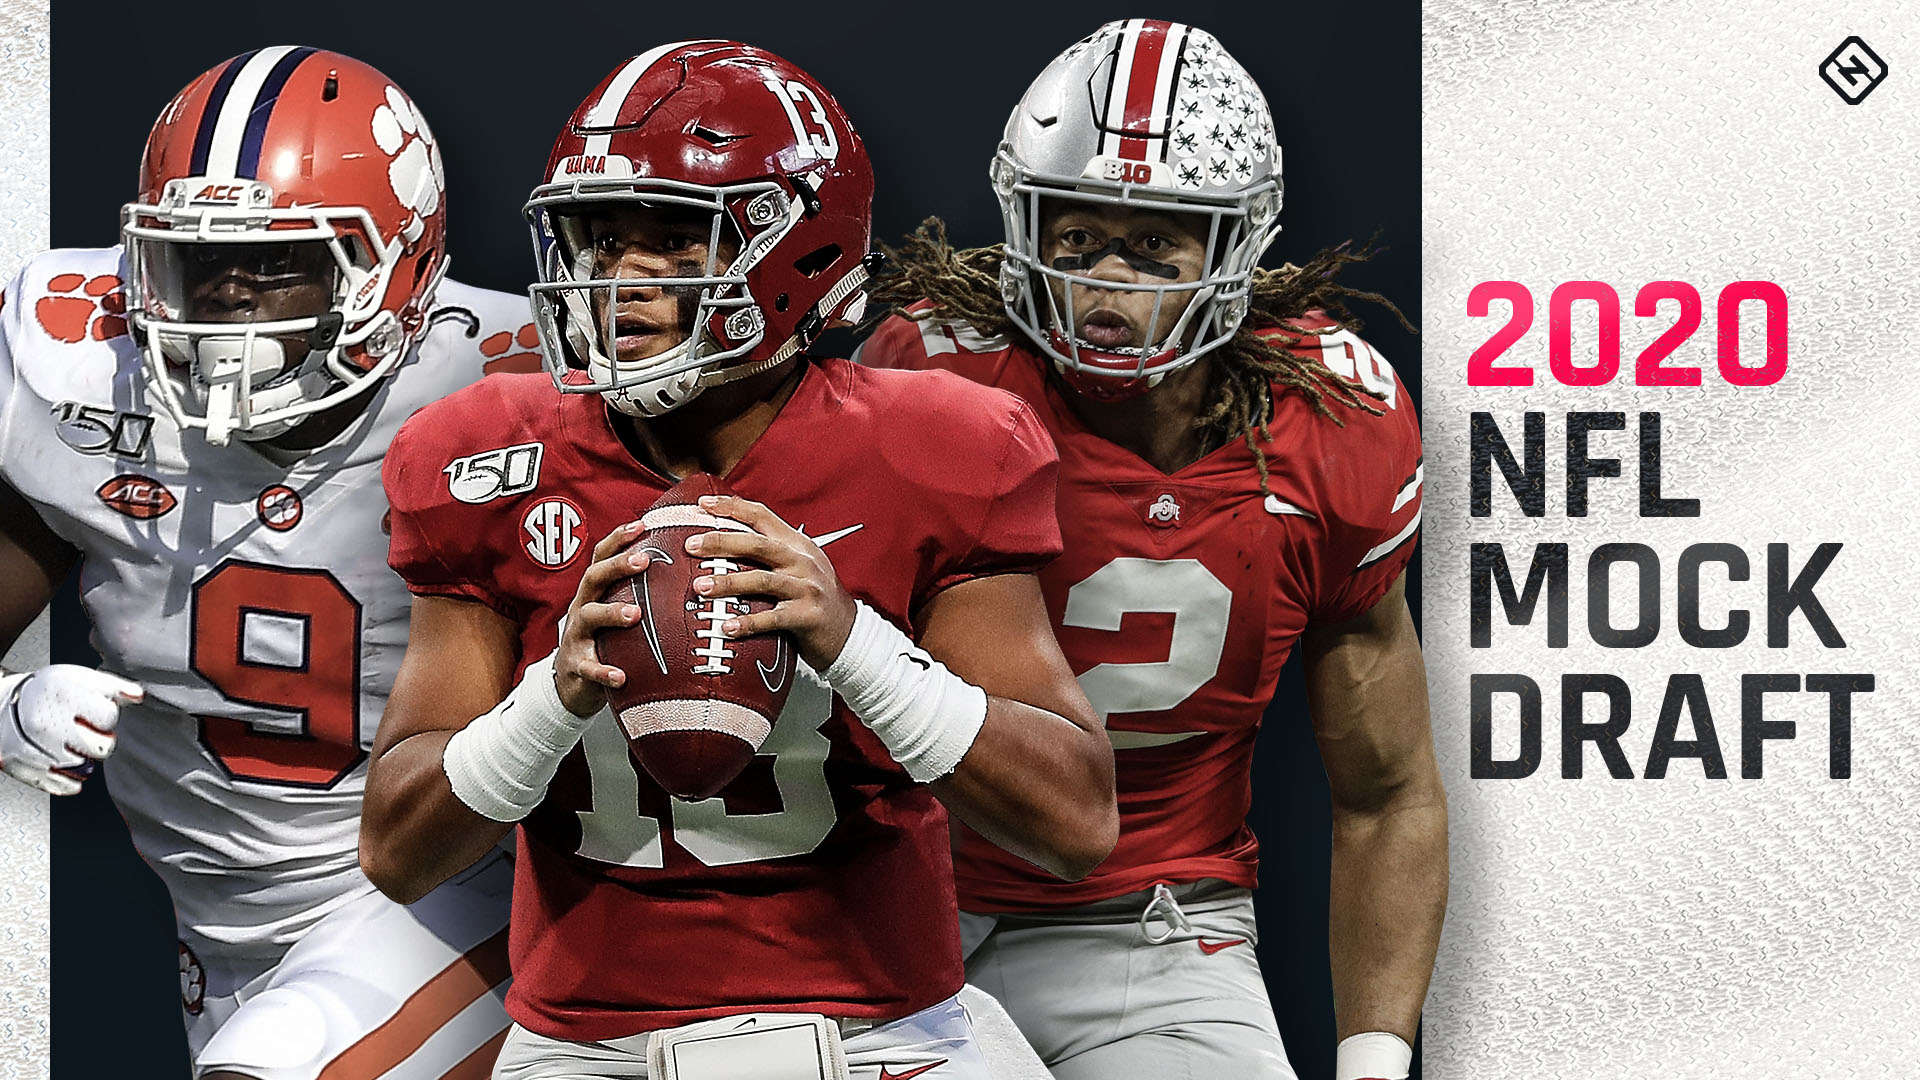 Best Nfl Teams 2020.Nfl Mock Draft 2020 Giants Pursue Chase Young Jets Get